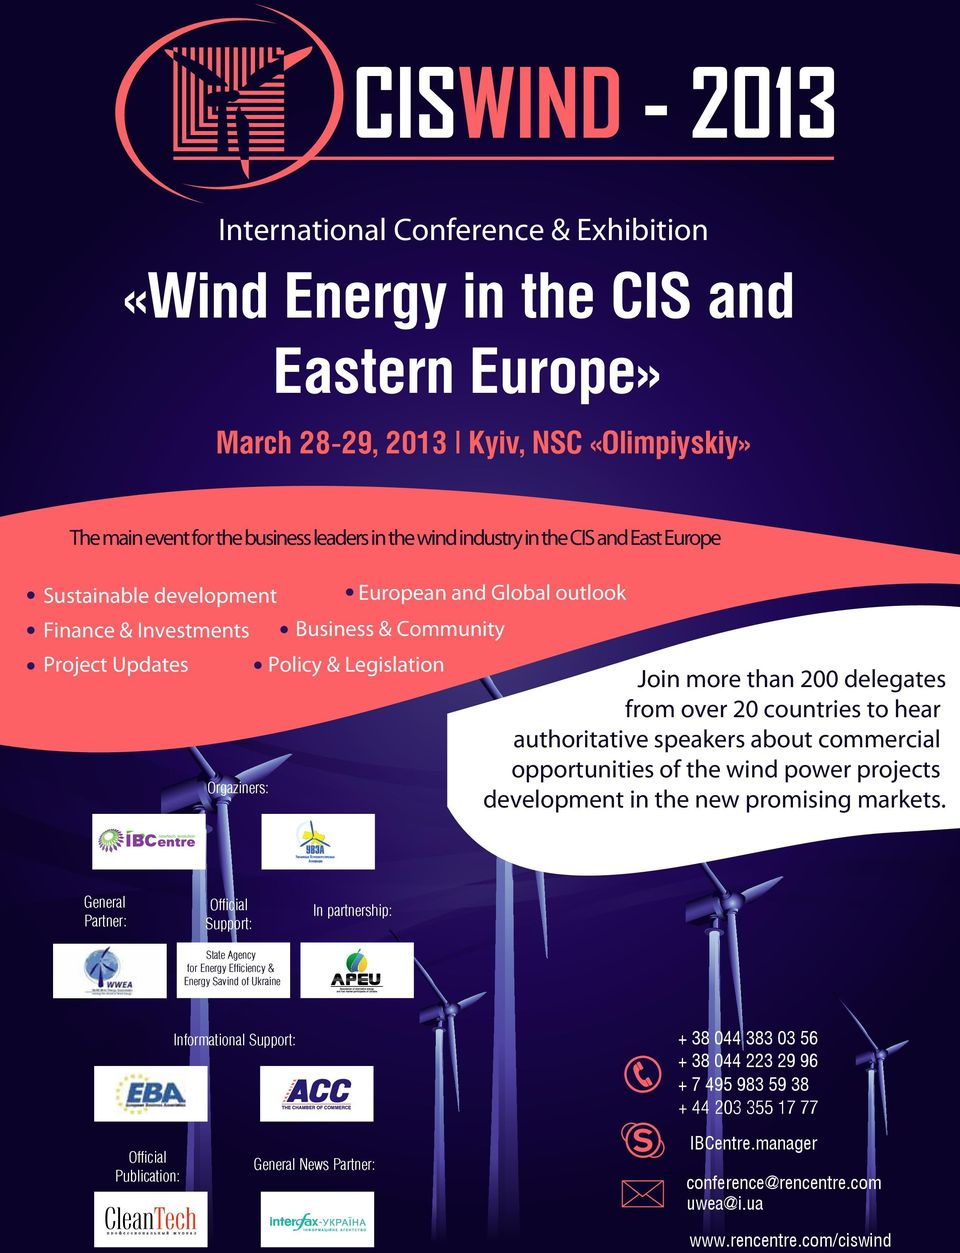 hear authoritative speakers about commercial opportunities of the wind power projects Orgaziners: development in the new promising markets.